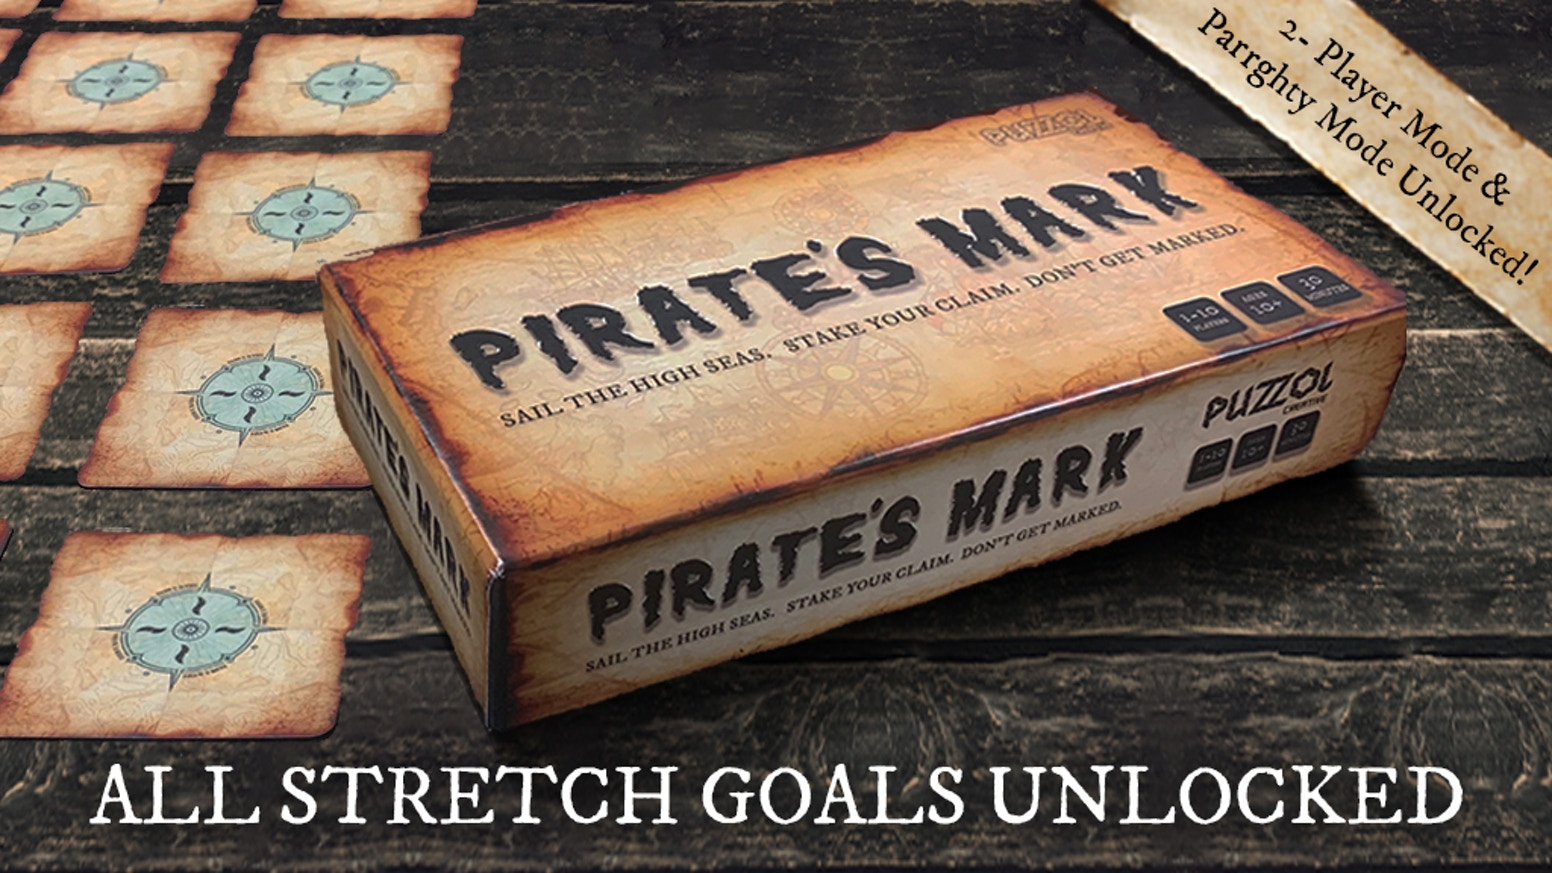 Sail the high seas. Stake your claim. Don't get marked. A thrilling party game for 3 to 10 players.